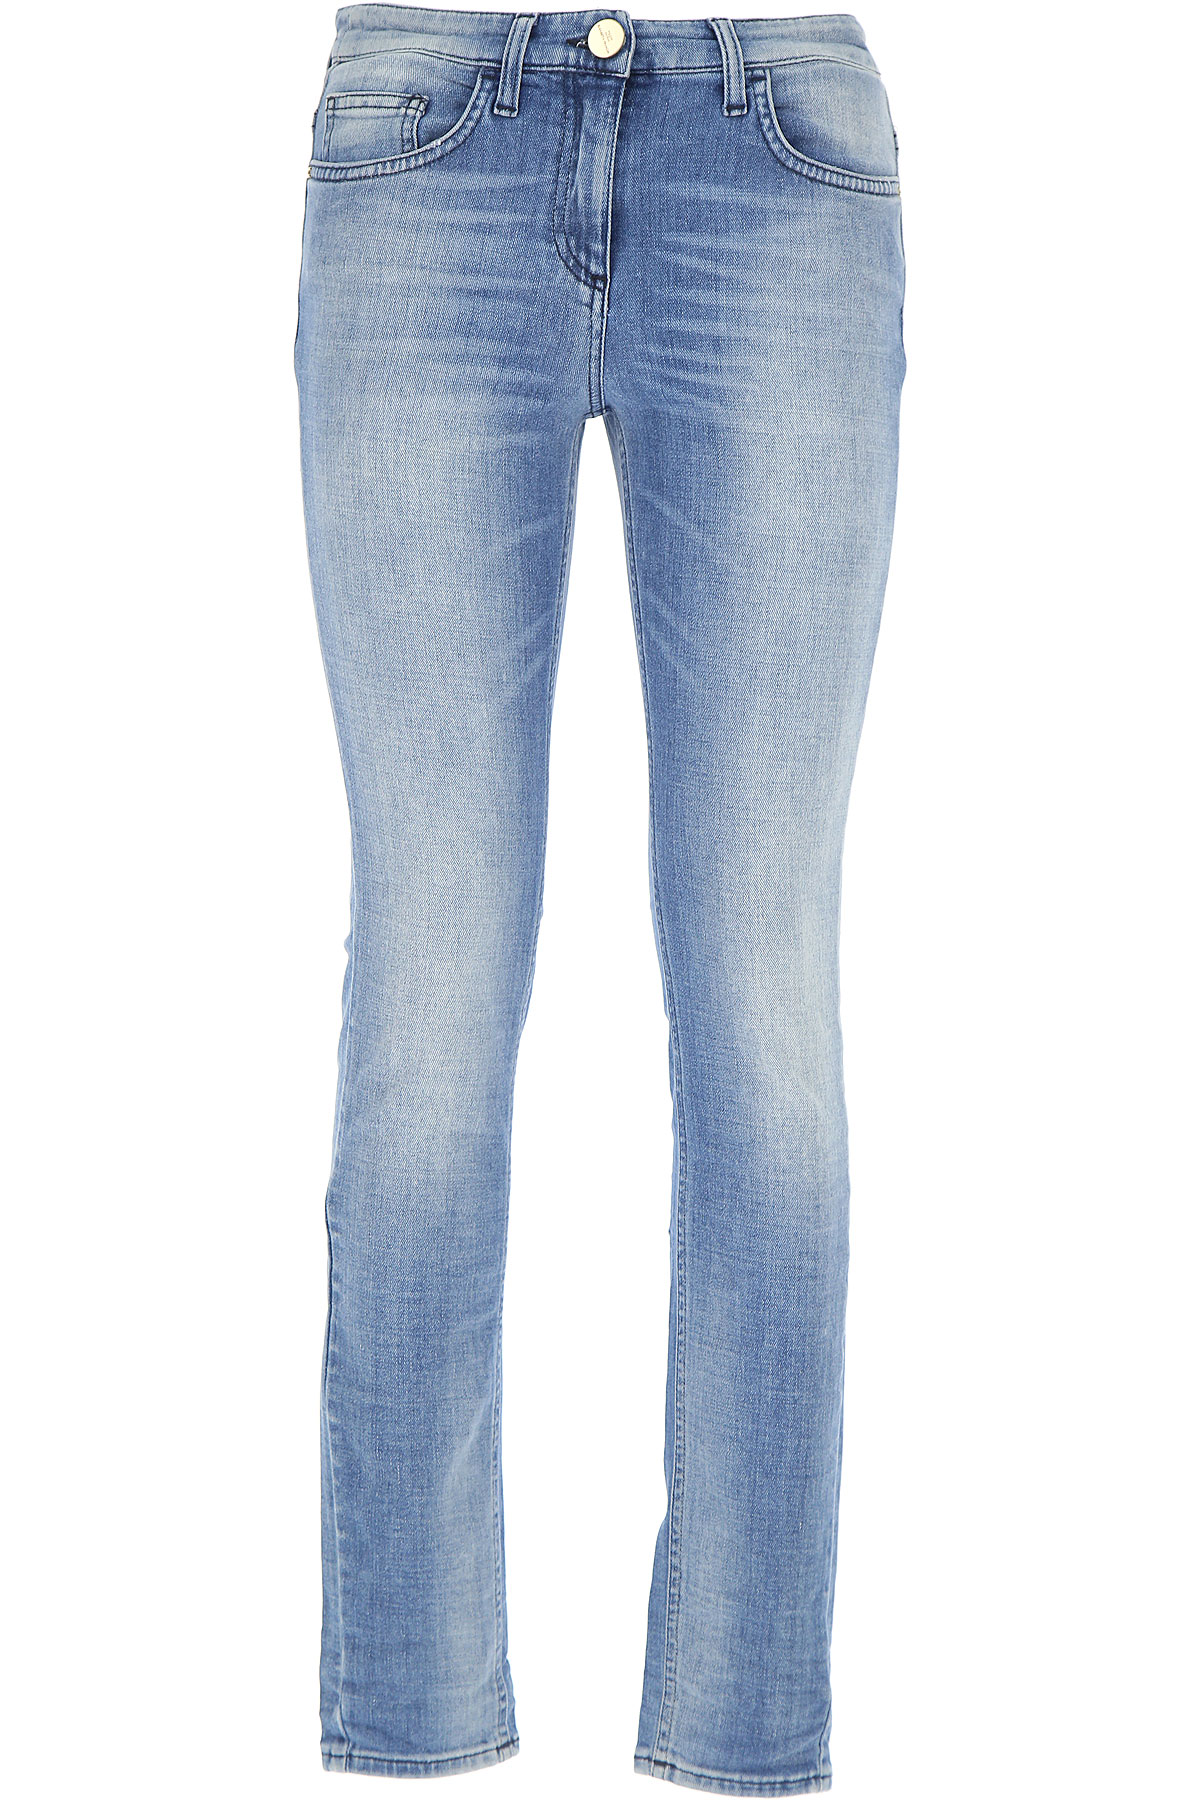 Elisabetta Franchi Jeans On Sale, Denim Blue, Cotton, 2017, 25 26 27 28 30